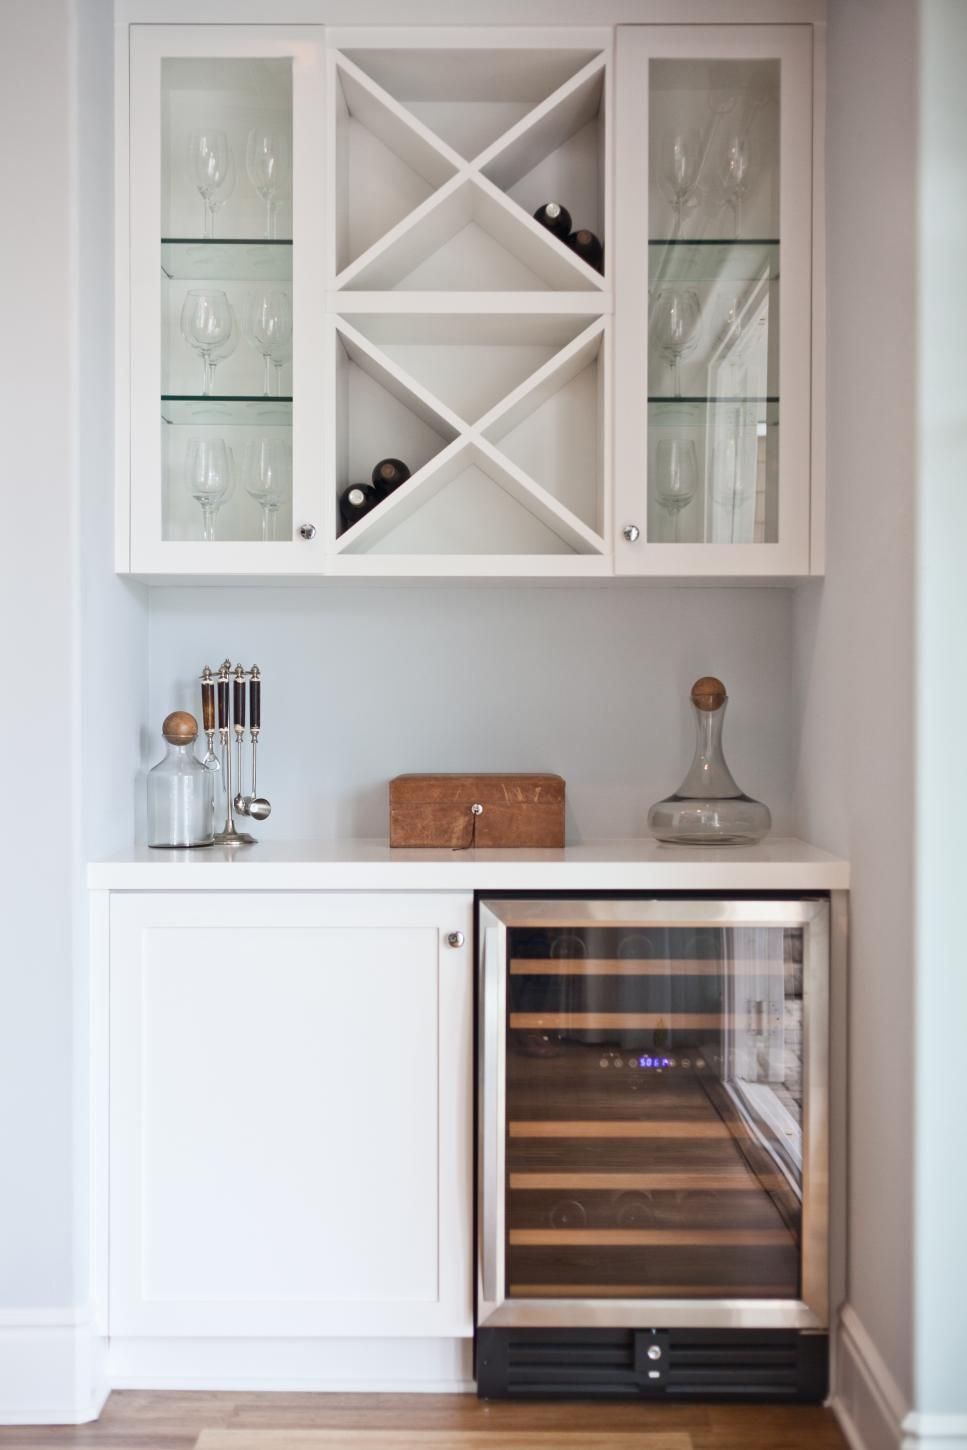 Hgtv With Its Own Sitting Area And Small Home Office Nook This Ious Master